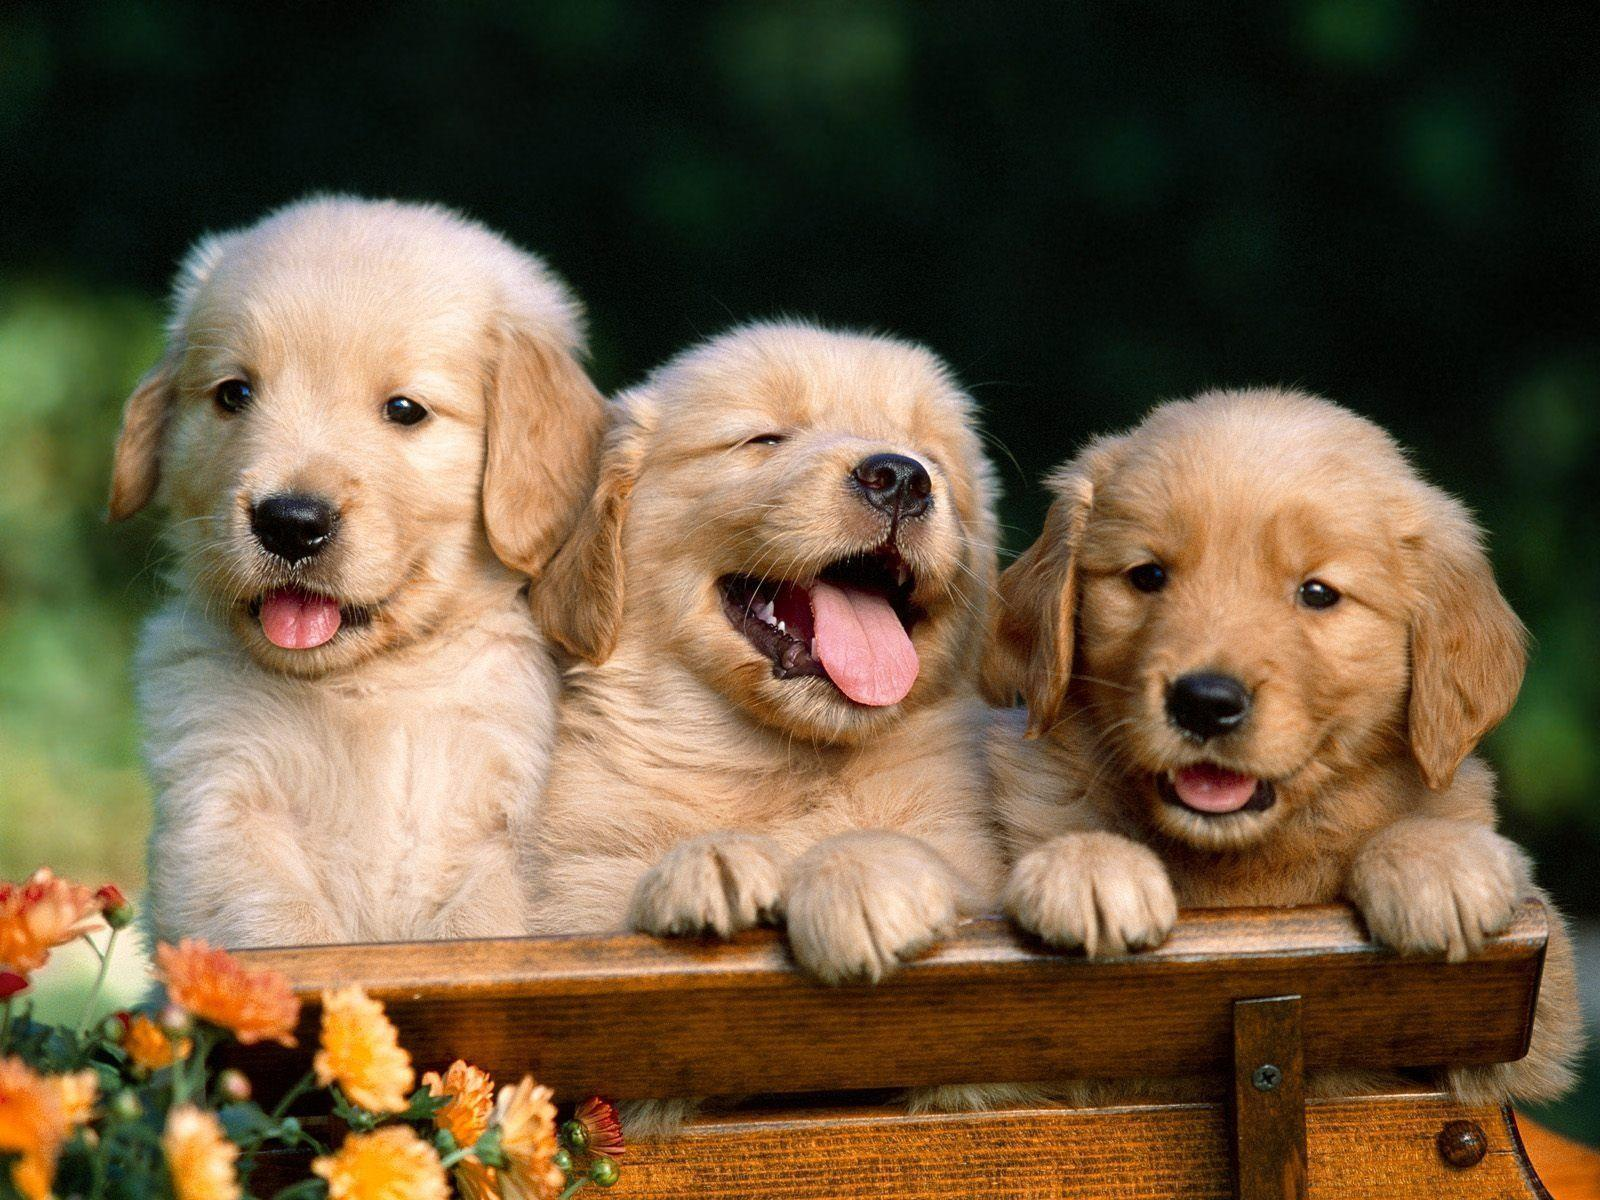 Golden Retriever Puppies wallpapers - HD Wallpapers Inn